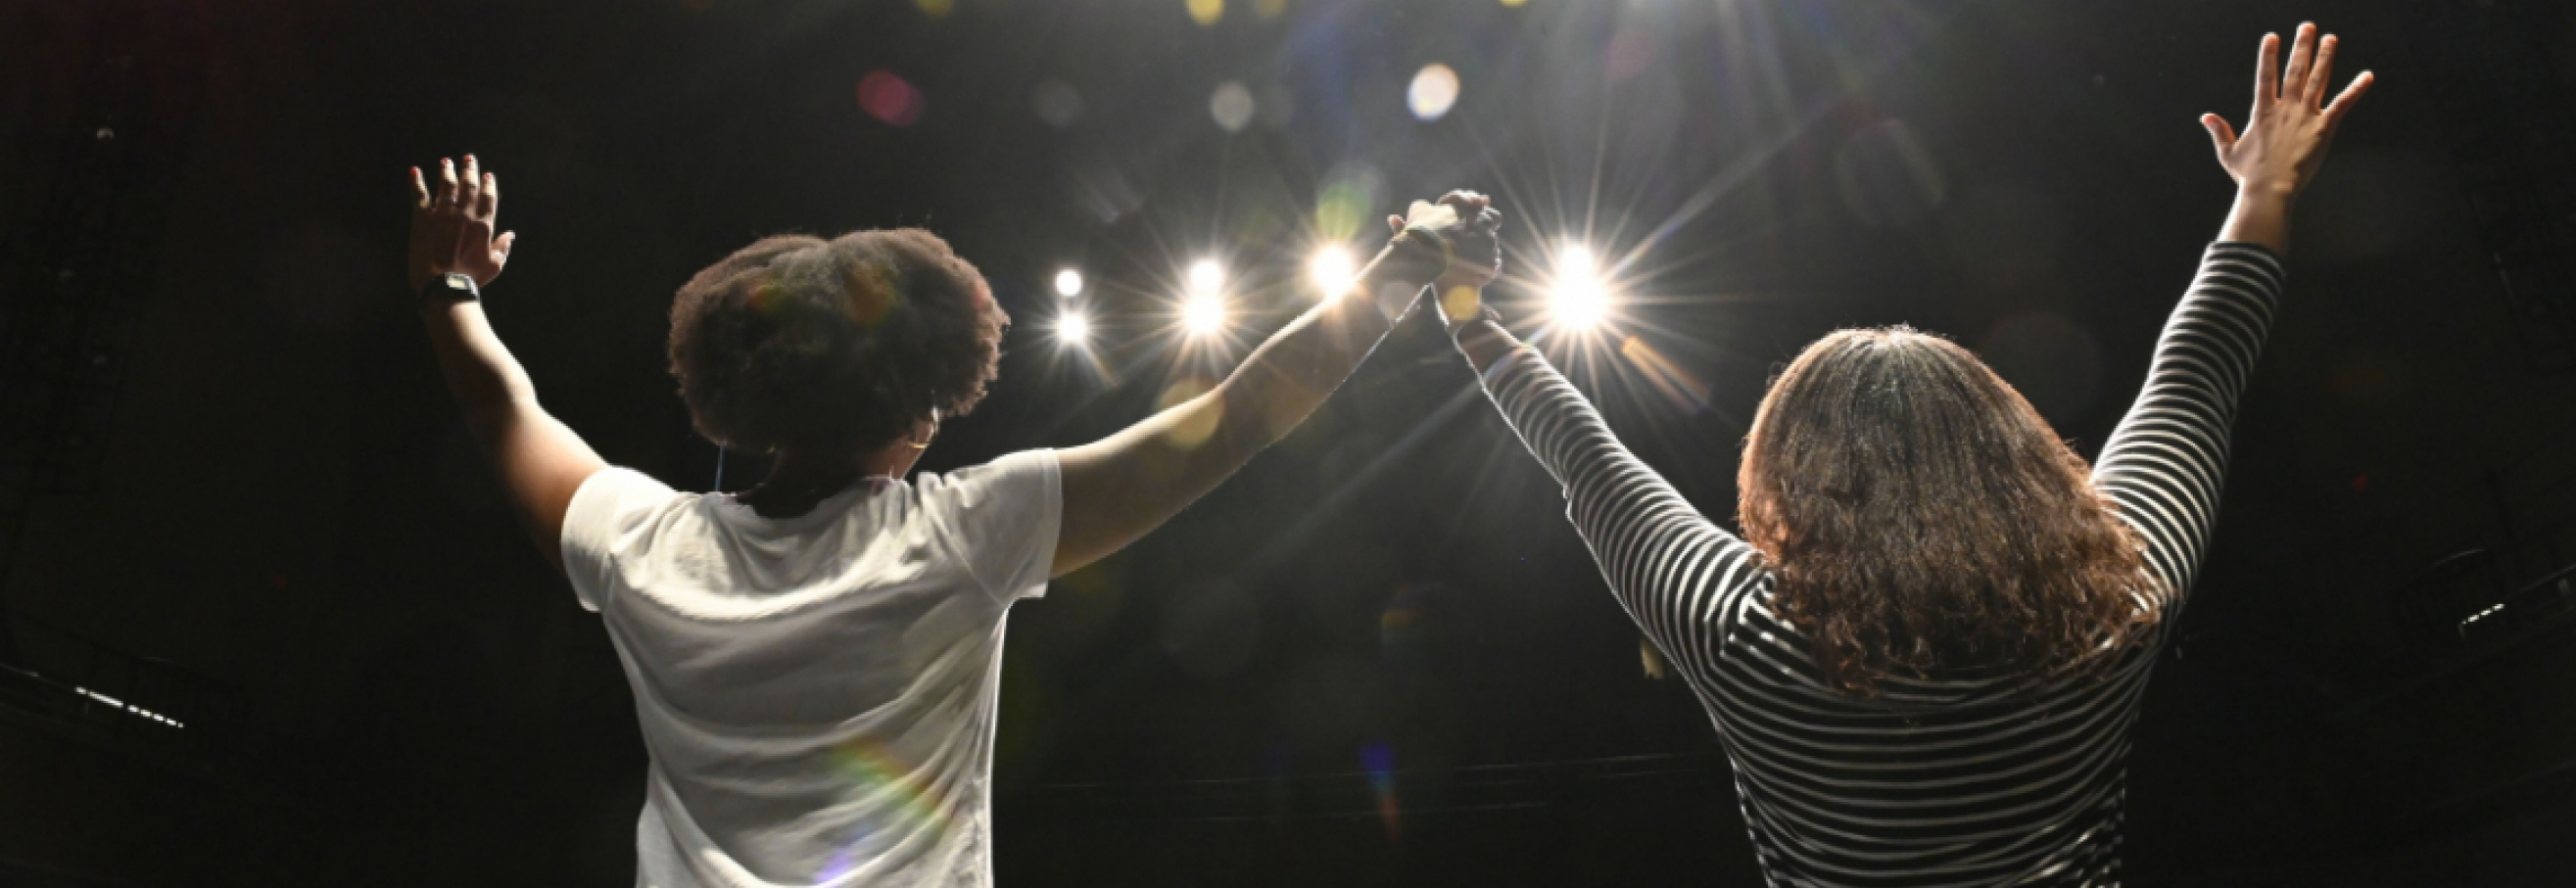 Inspiration image of two people on stage